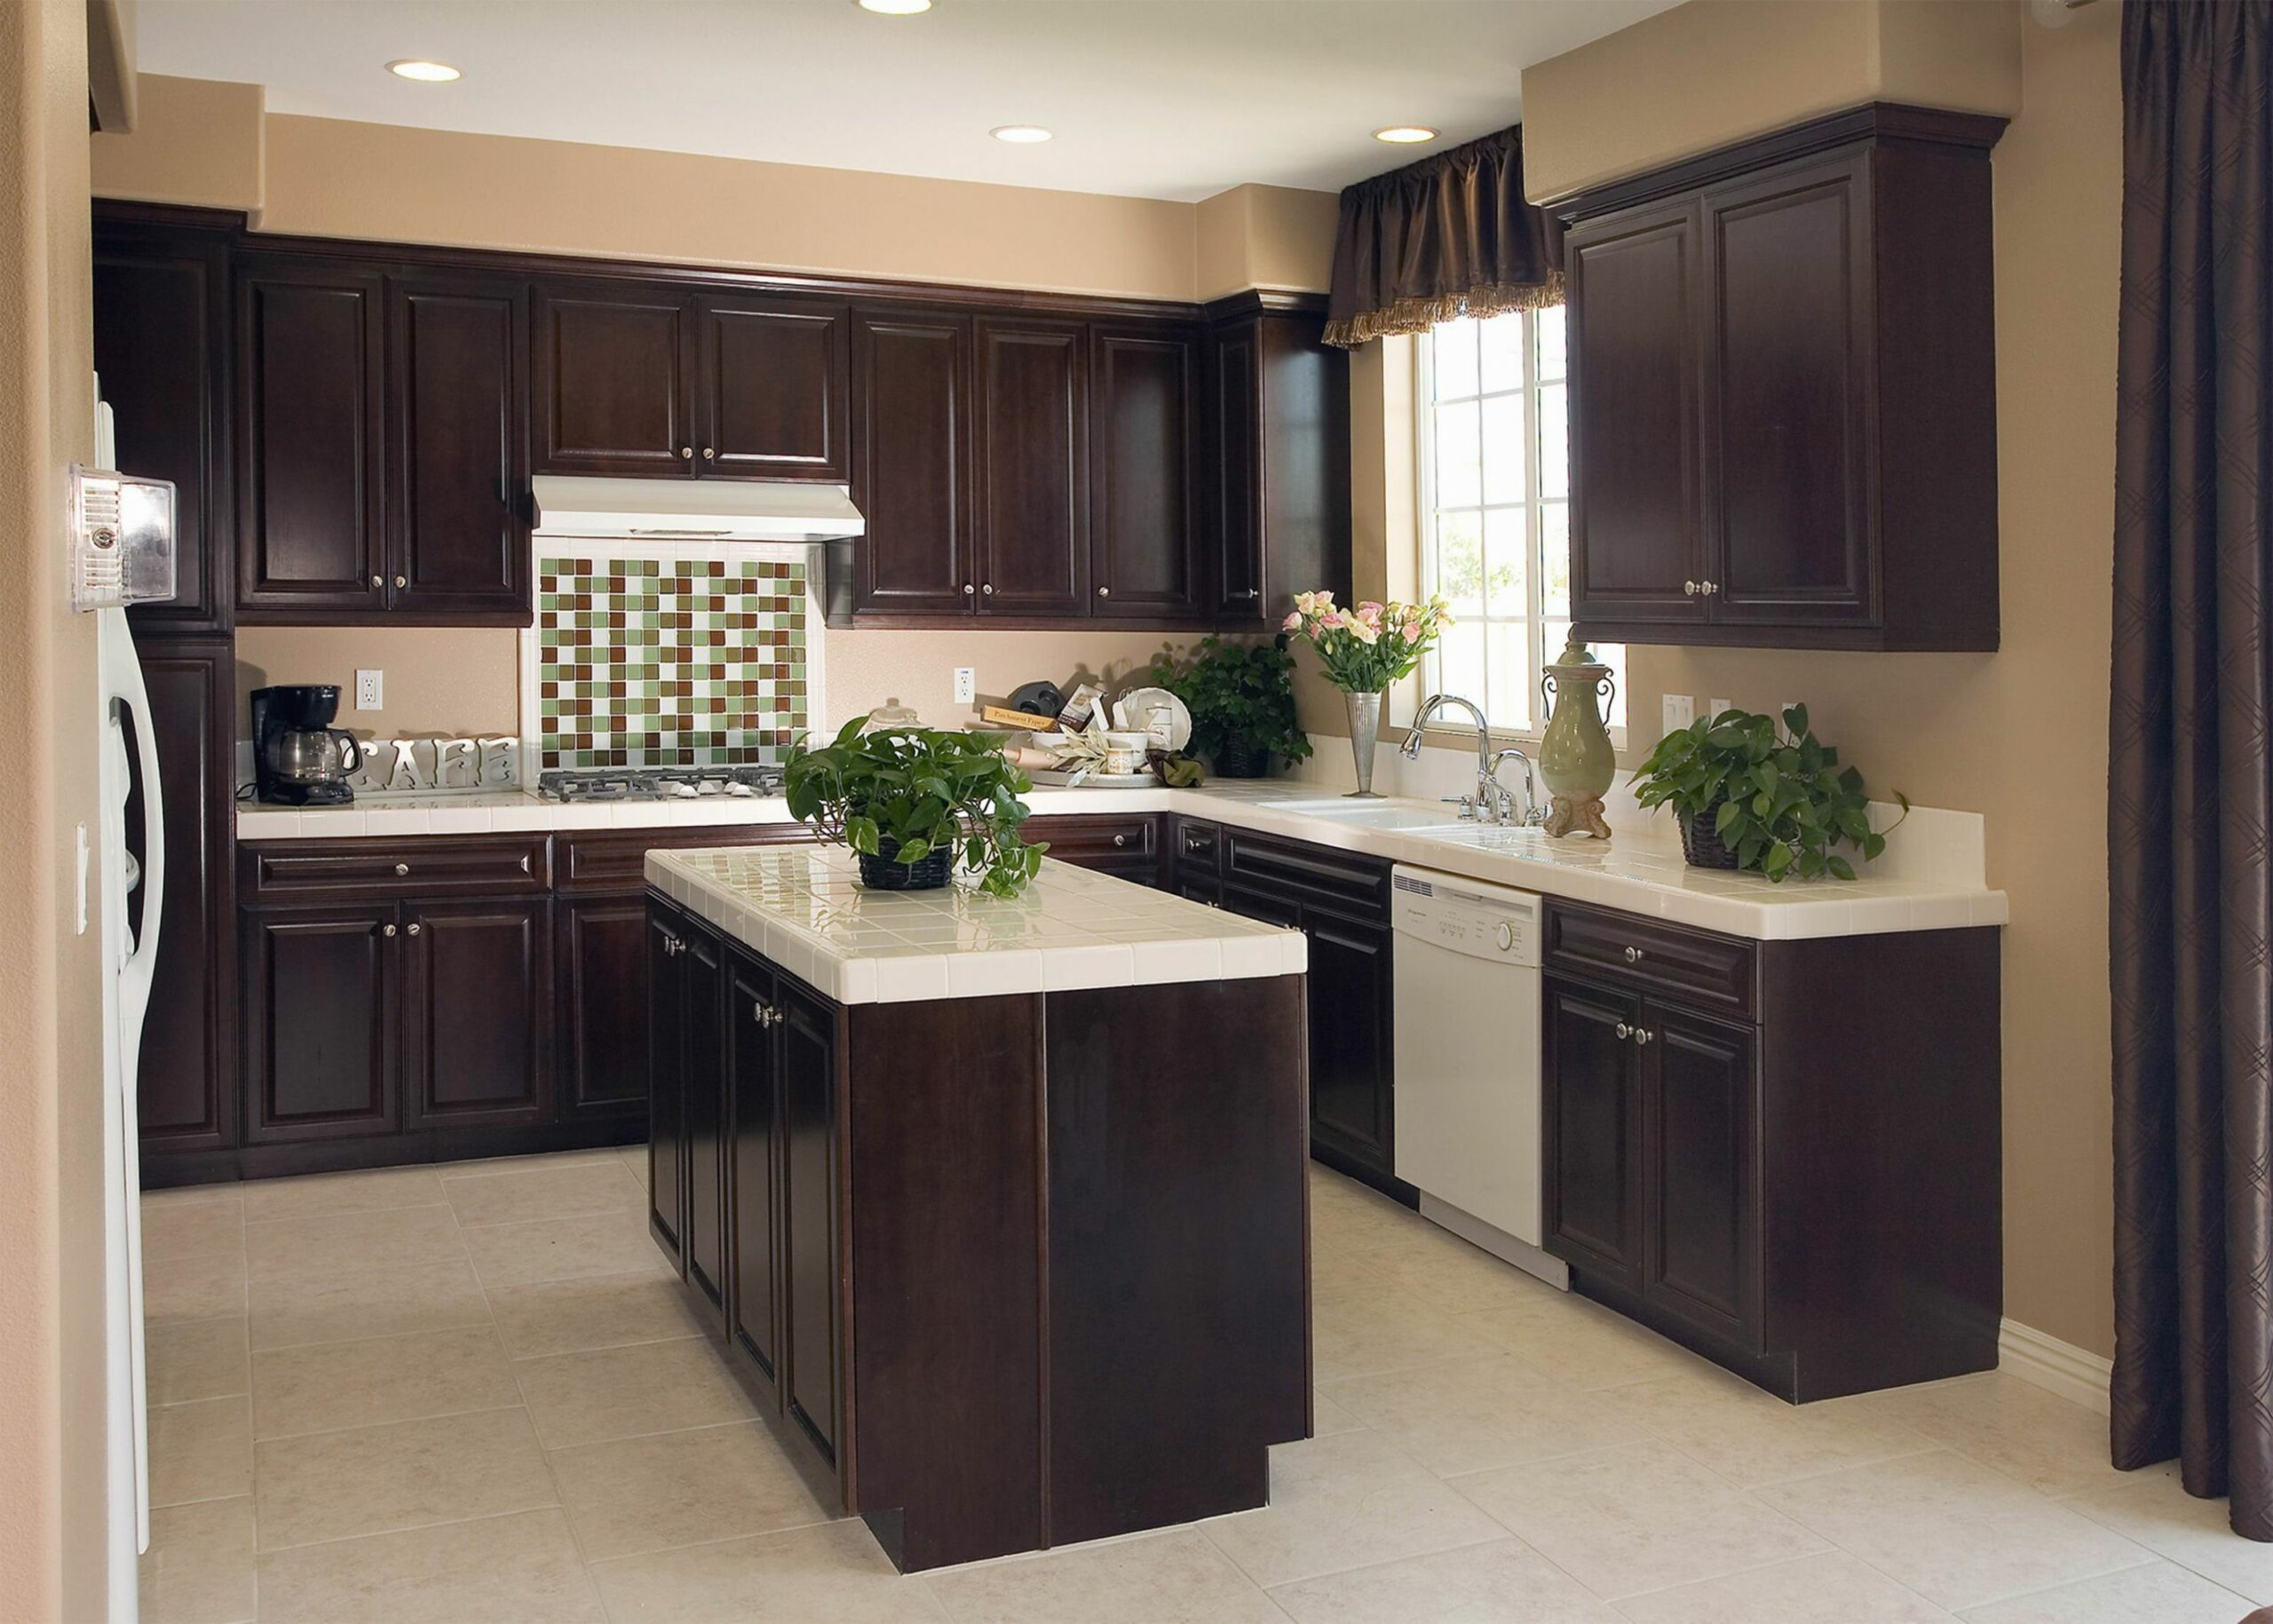 Picture of Kitchen Colors with Dark Brown Cabinets L Shaped Layout - kitchen ideas light brown cabinets